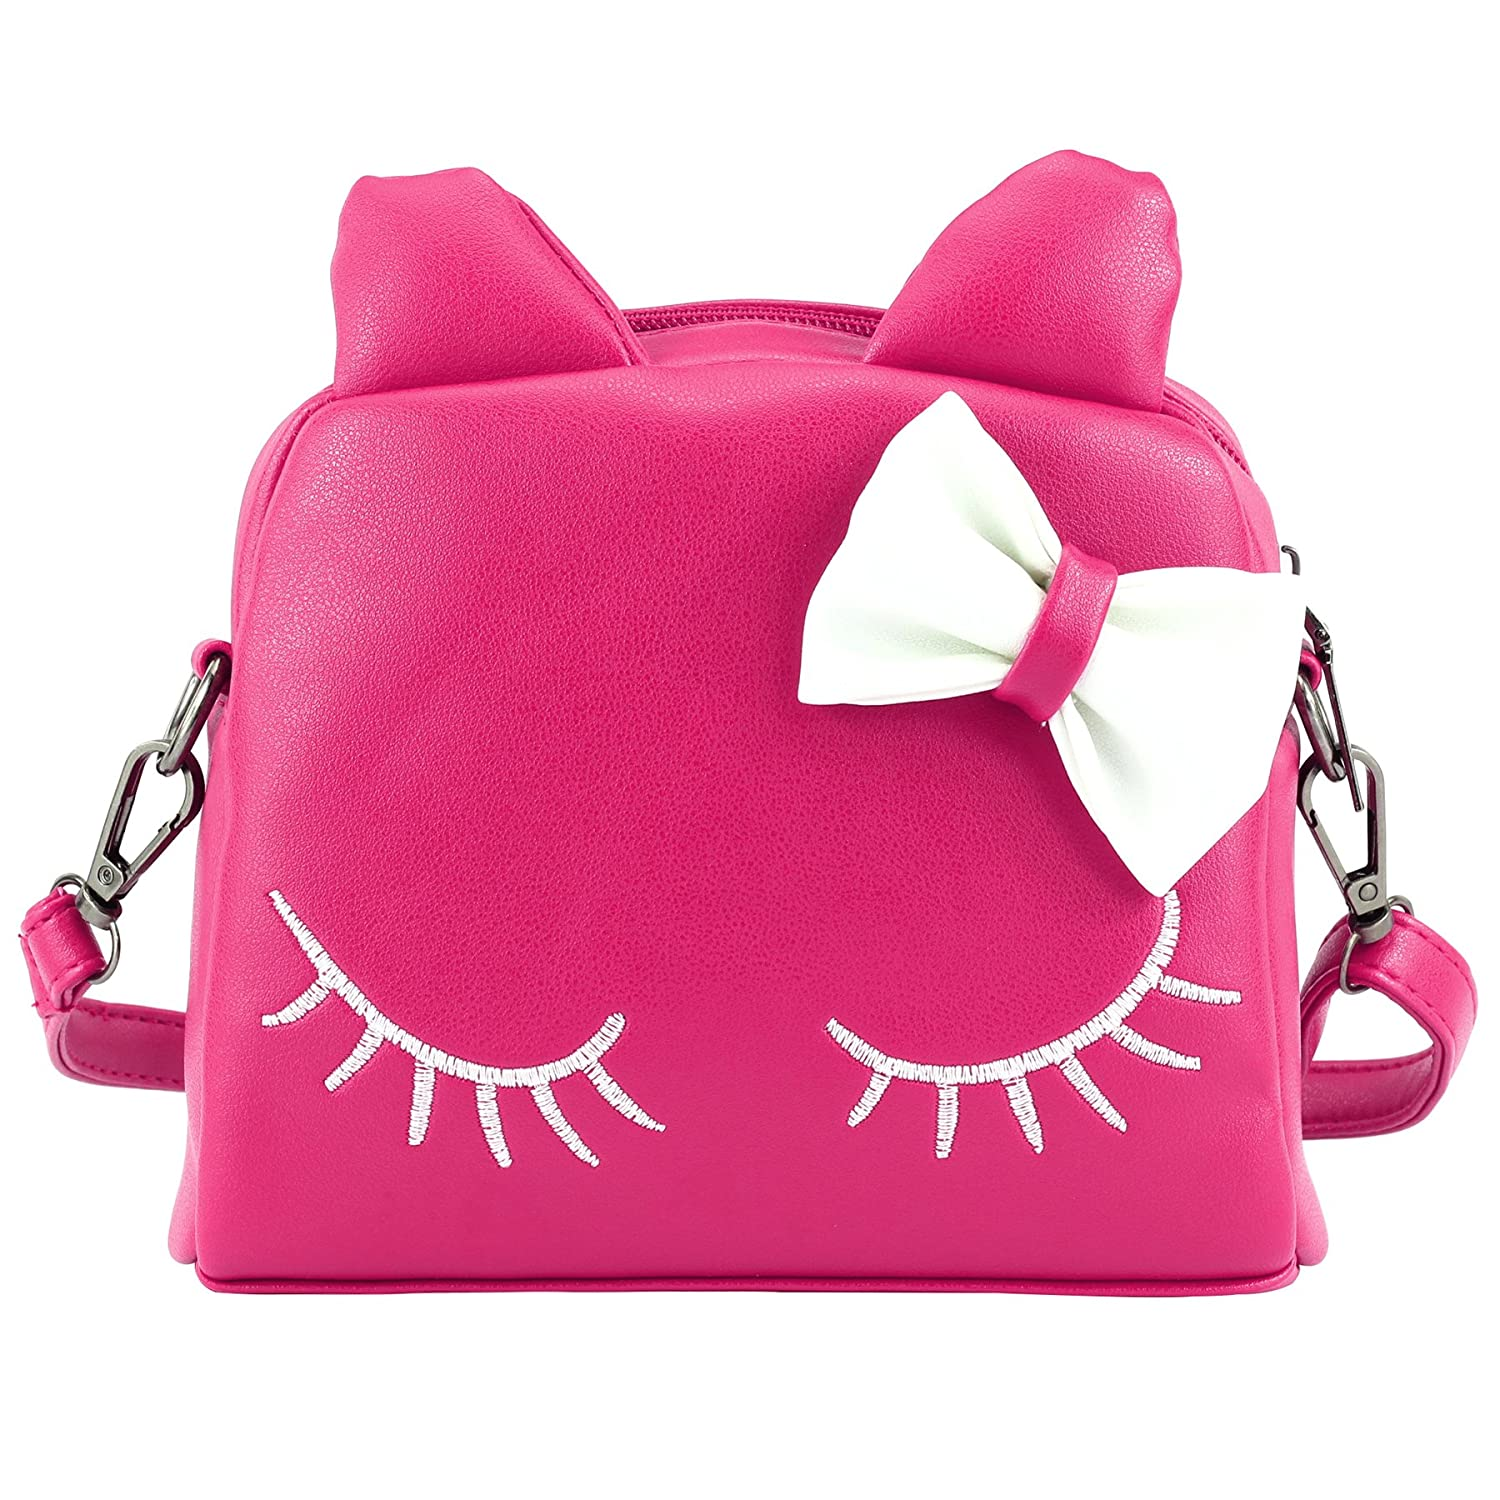 CMK Trendy Kids Cute Little Girls Cat Purse for Toddler Kids Mini Backpack Bags with Bows